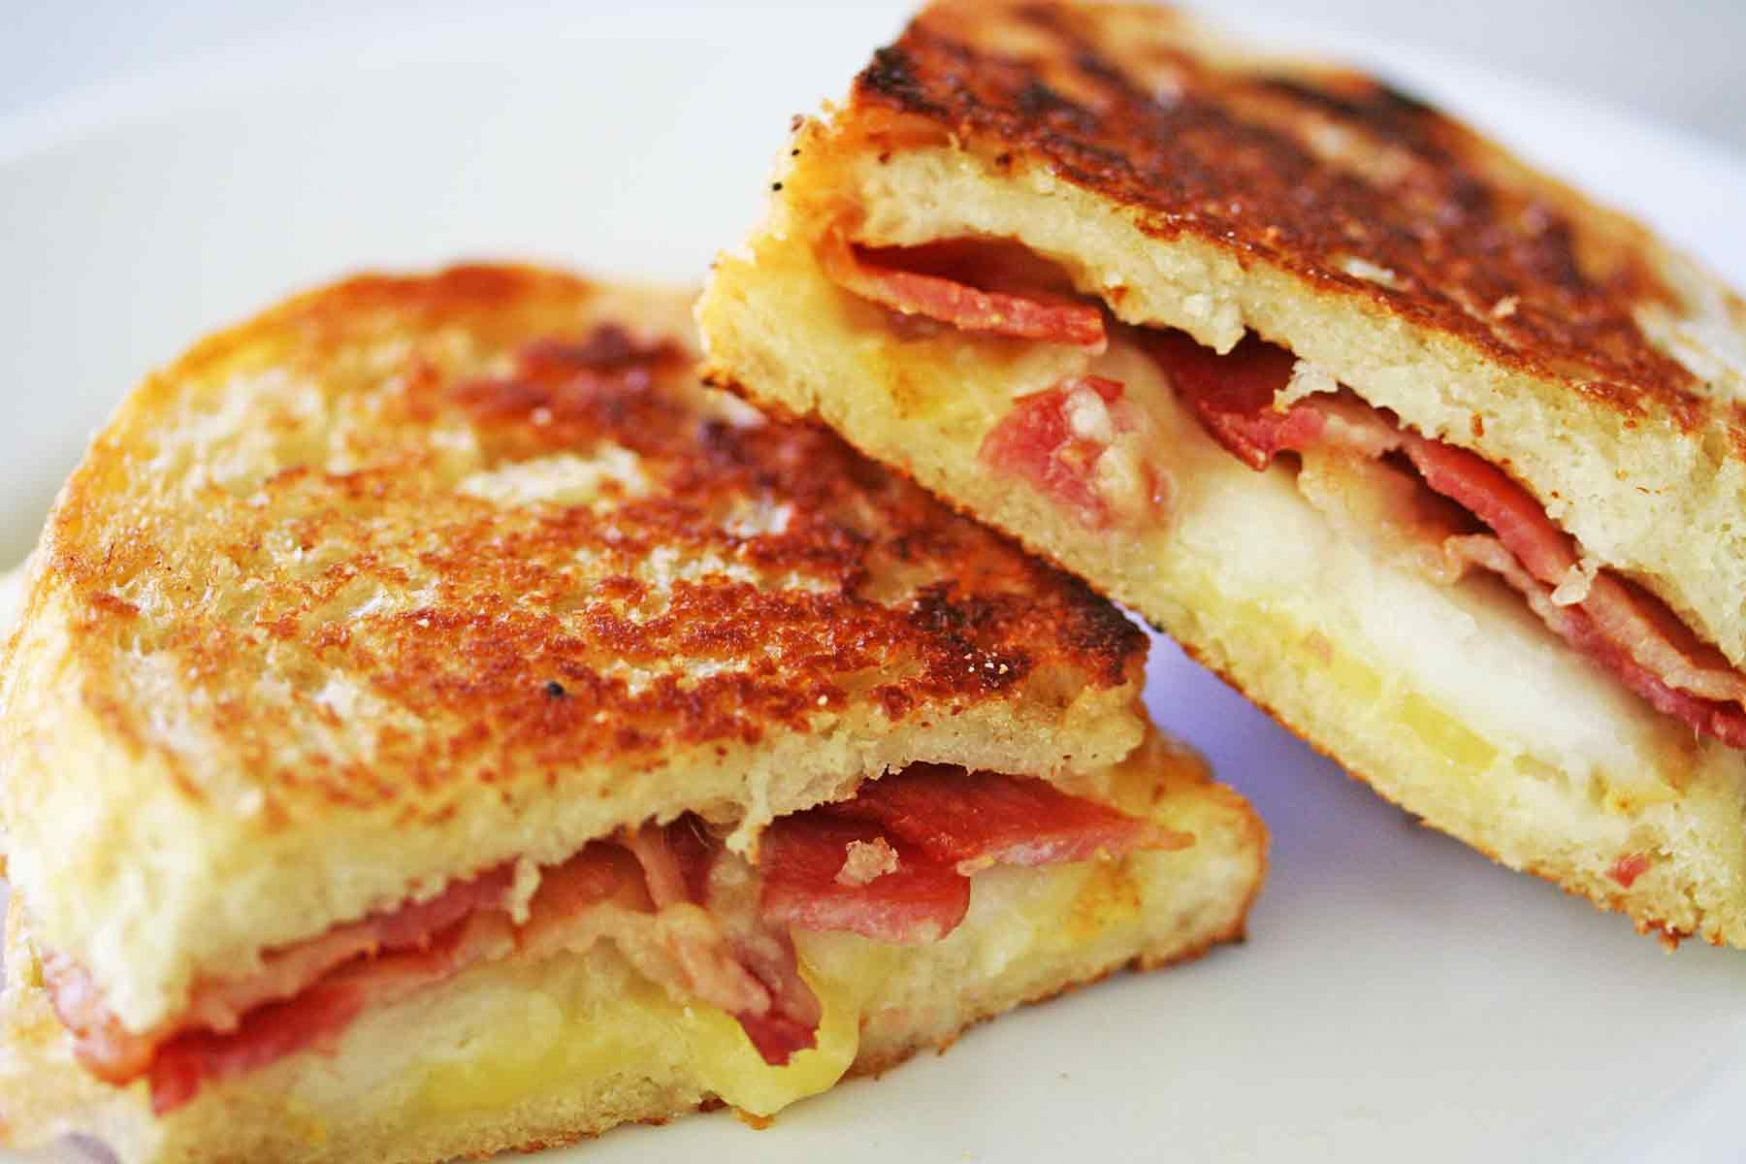 Grilled Cheese Sandwich with Bacon and Pear - Sandwich Recipes Ham And Cheese